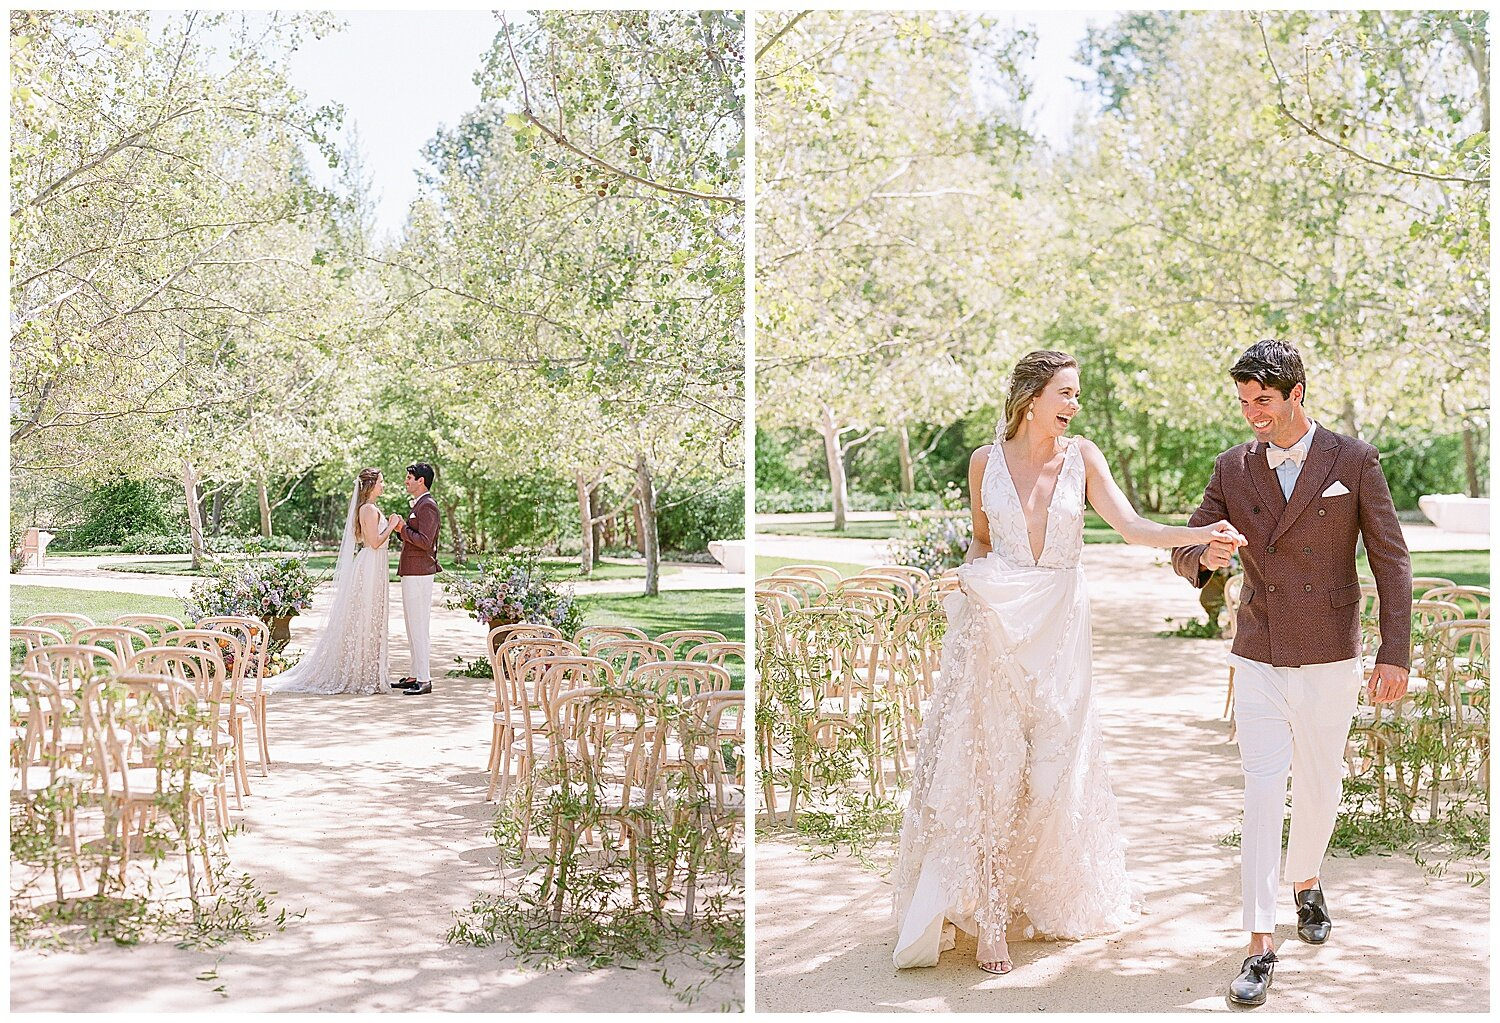 Janine_Licare_Photography_San_Francisco_Kestrel_Park_Santa_Ynez_Sunstone_Villa_Winer_Wedding_Photographer_Meadowood_Napa_Valley_Sonoma_0063.jpg